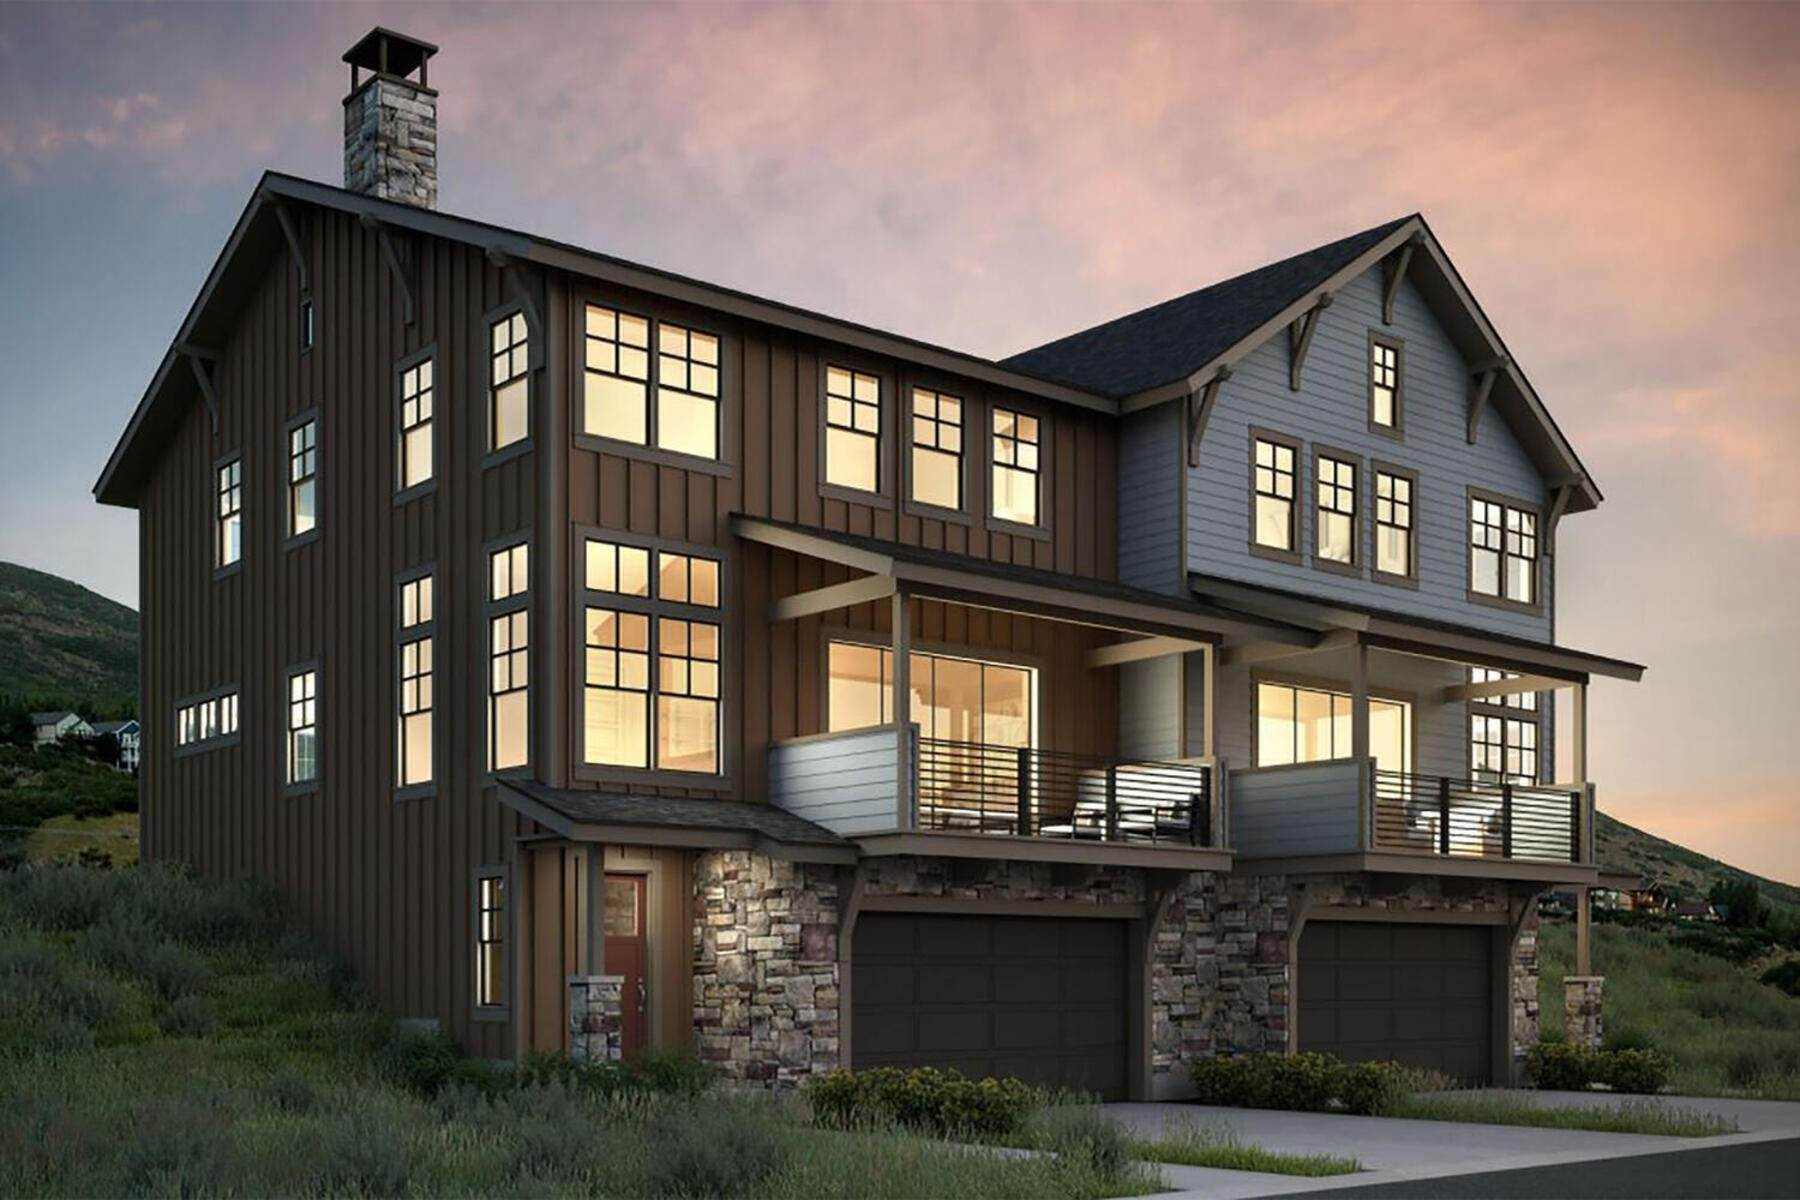 townhouses for Sale at New Construction Townhome Just Minutes From Park City 12732 N Belaview Way, Lot 12 Hideout Canyon, Utah 84036 United States